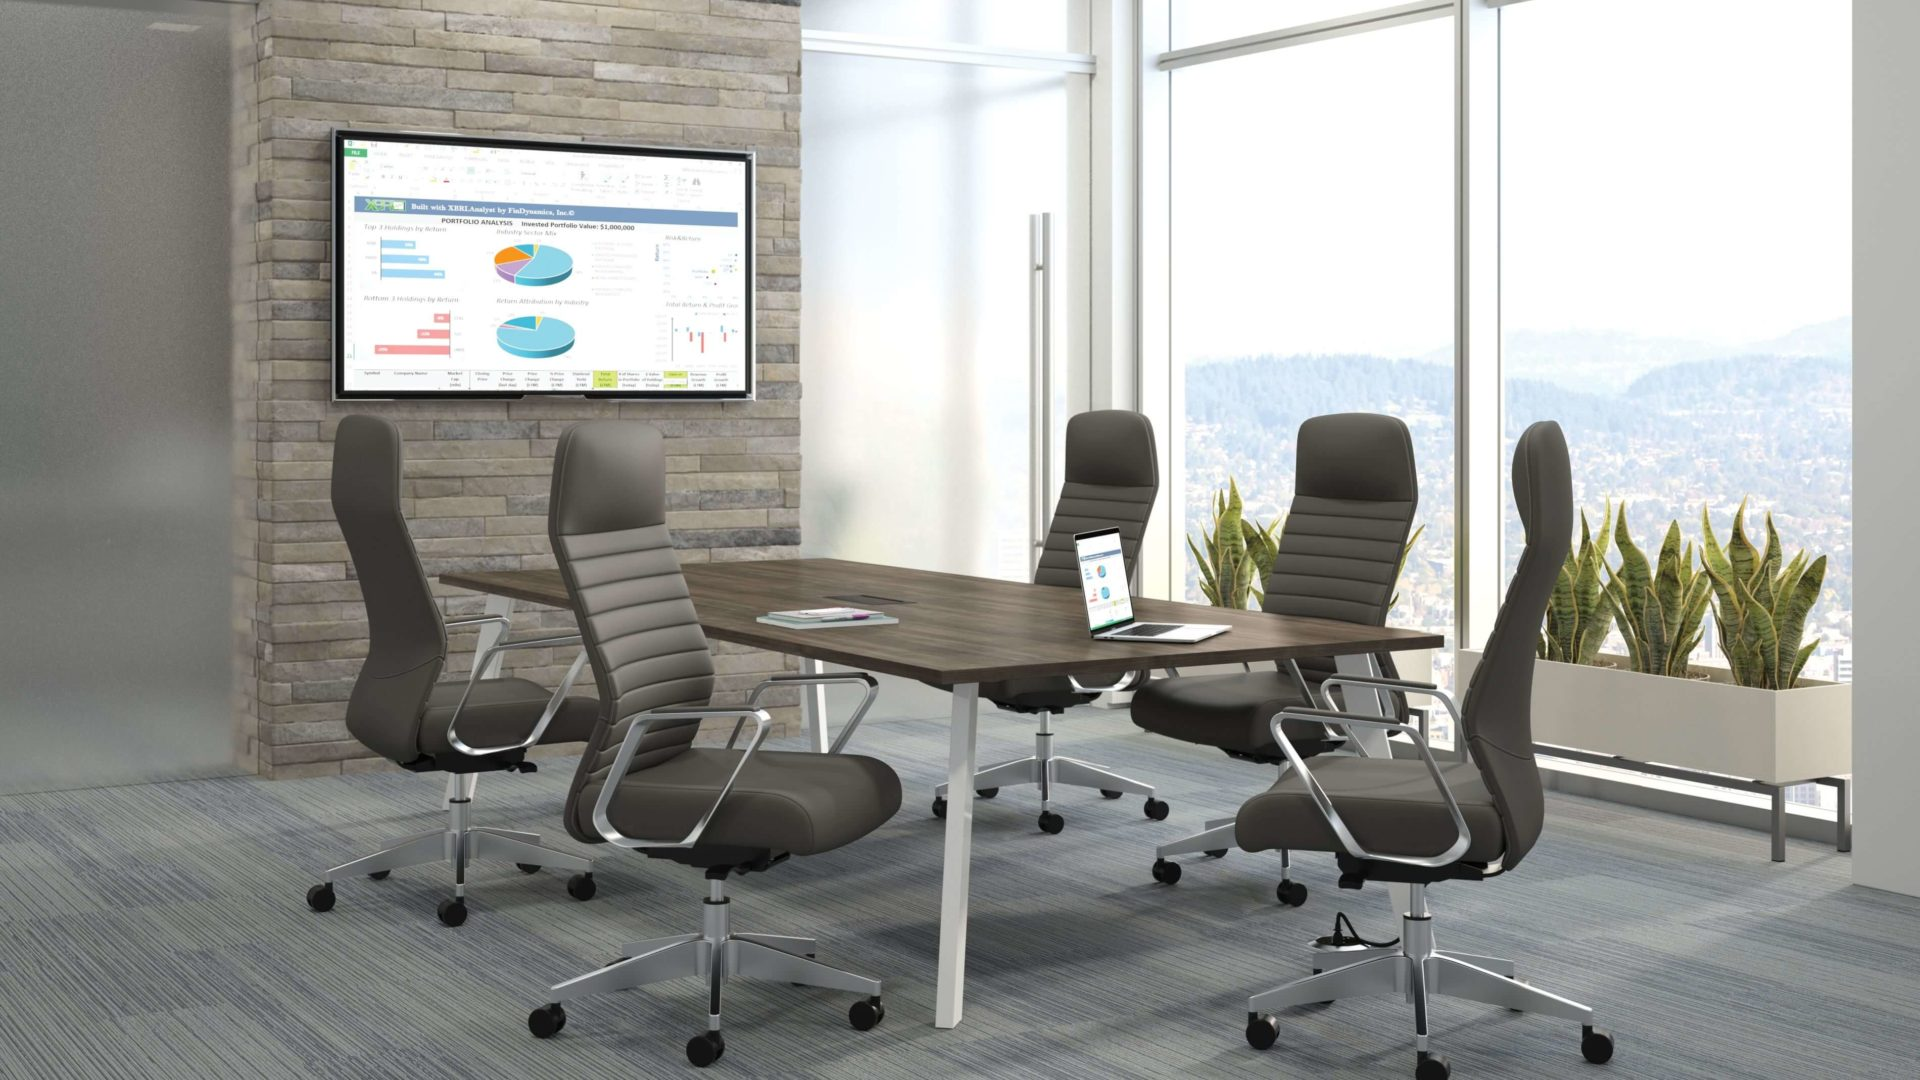 Morgantown Office Furniture WV | (304) 581-6701 Omega Commercial Interiors